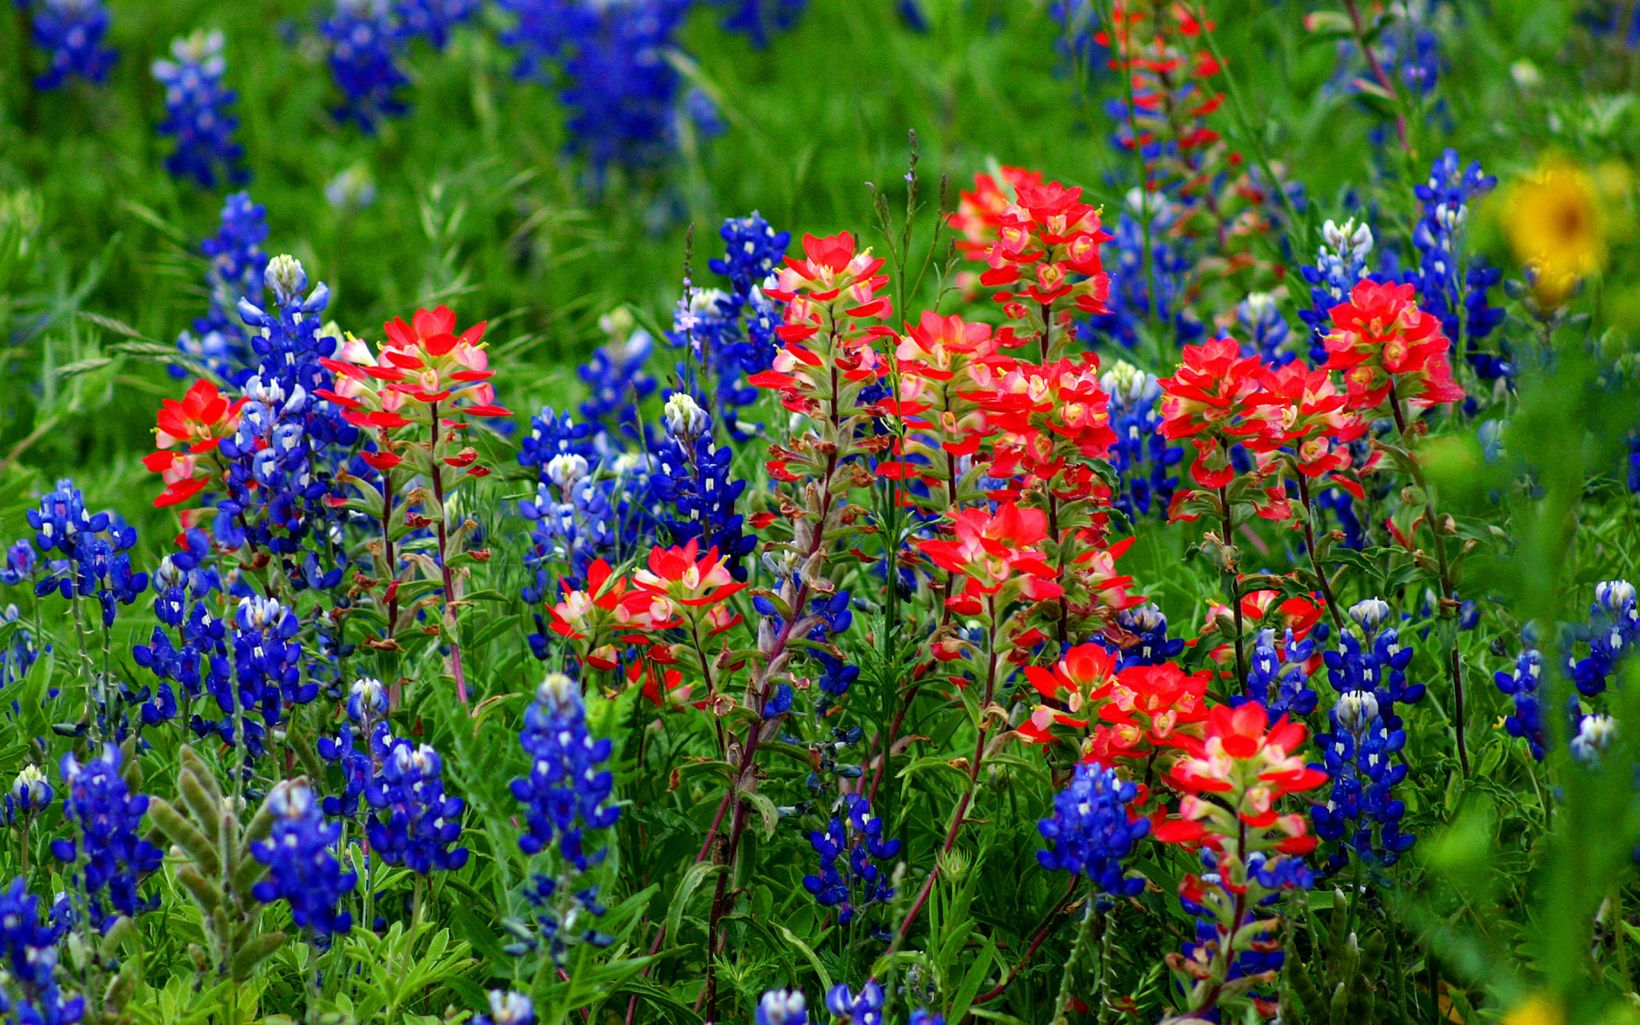 Texas wildflowers bloom at Barton Creek Habitat Preserve.